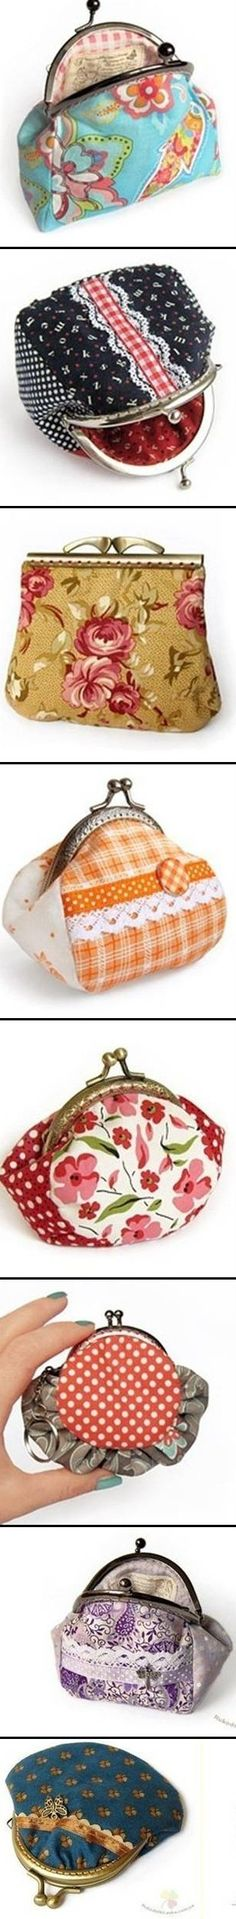 Framed Coin Purses - Free Sewing Templates.Easy,quick & fun.Choose your own fabric colors.